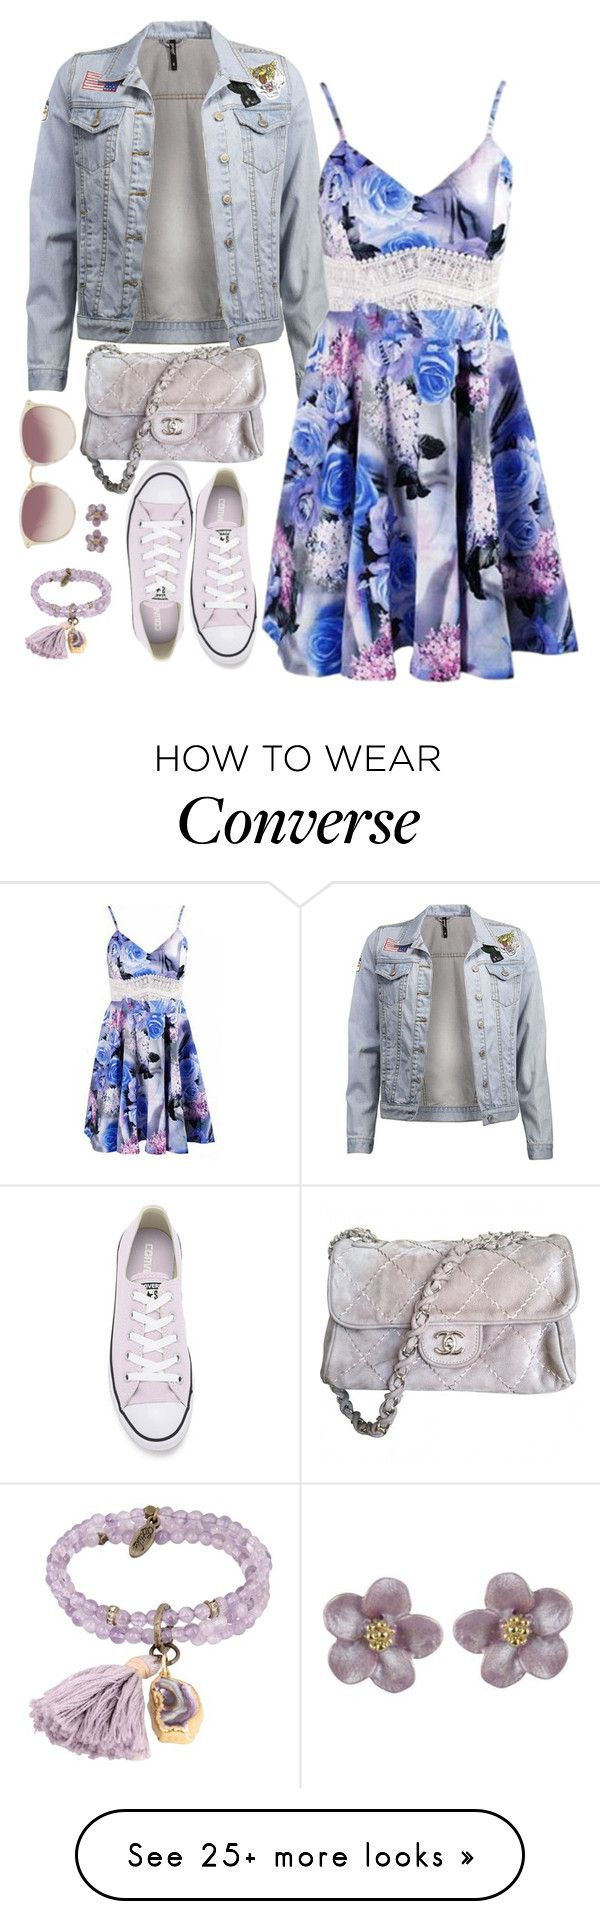 """Floral Dress [2]"" by myxvonwh on Polyvore featuring Converse, Ettika, Linda Farrow and Chanel"